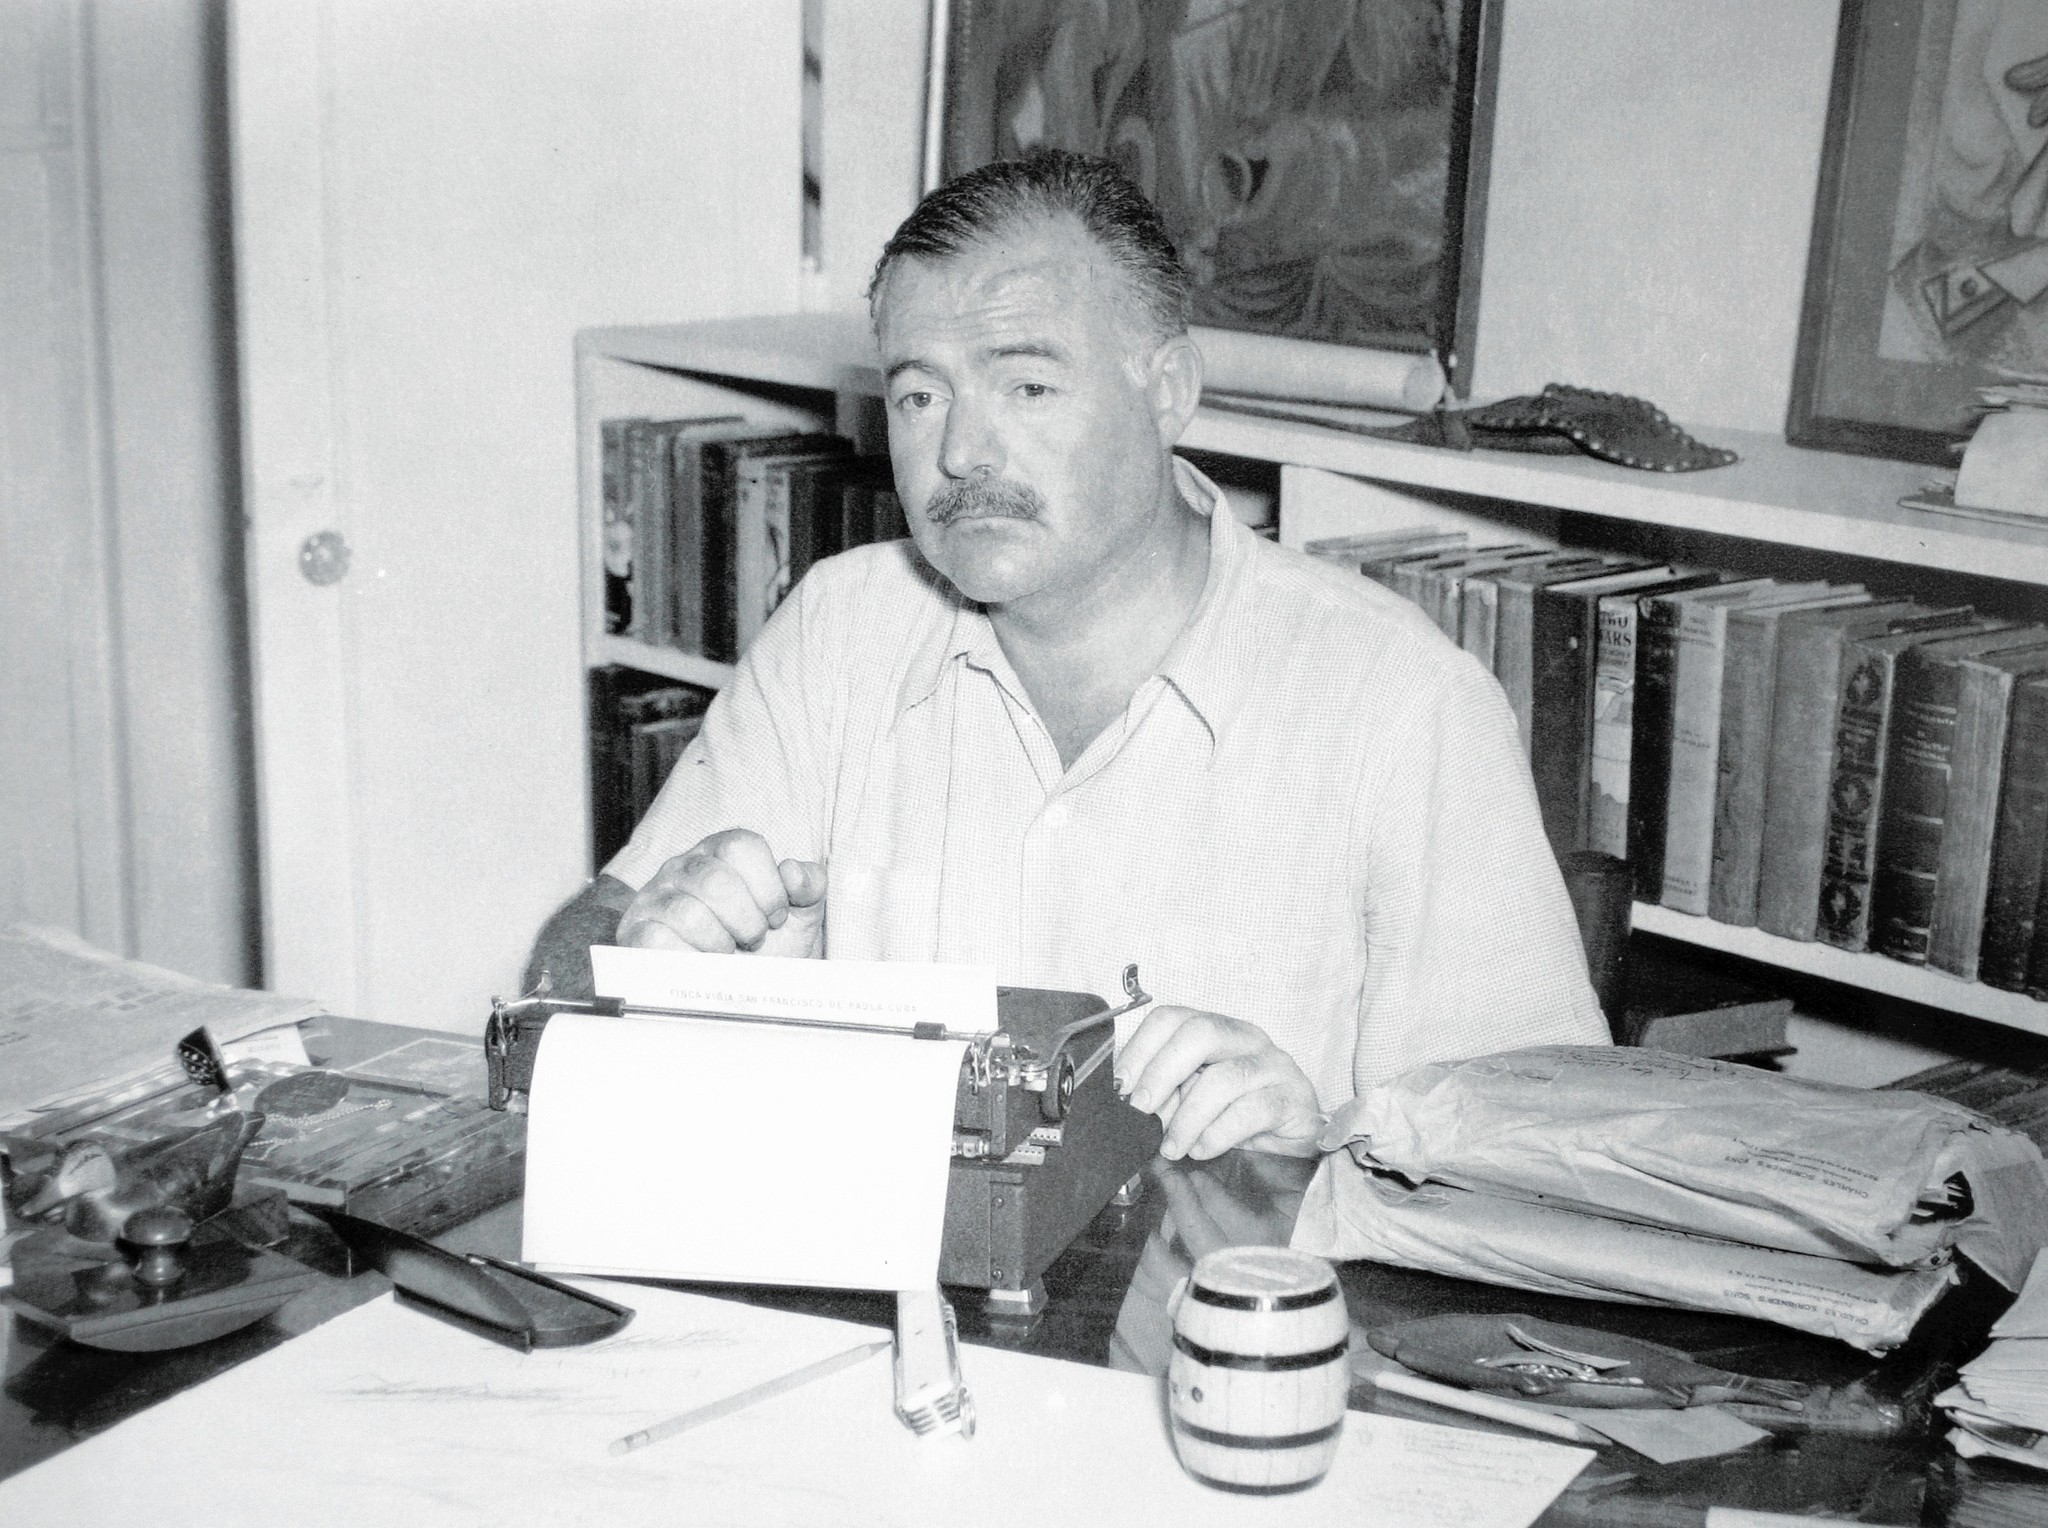 hemingways writing style A statistical analysis of the data behind hemingway's style by justin rice, published on calculate his choices, and try to come up with a statistical understanding of what makes hemingway hemingway hemingway's let's see what happens when we compare hemingway's writing to.